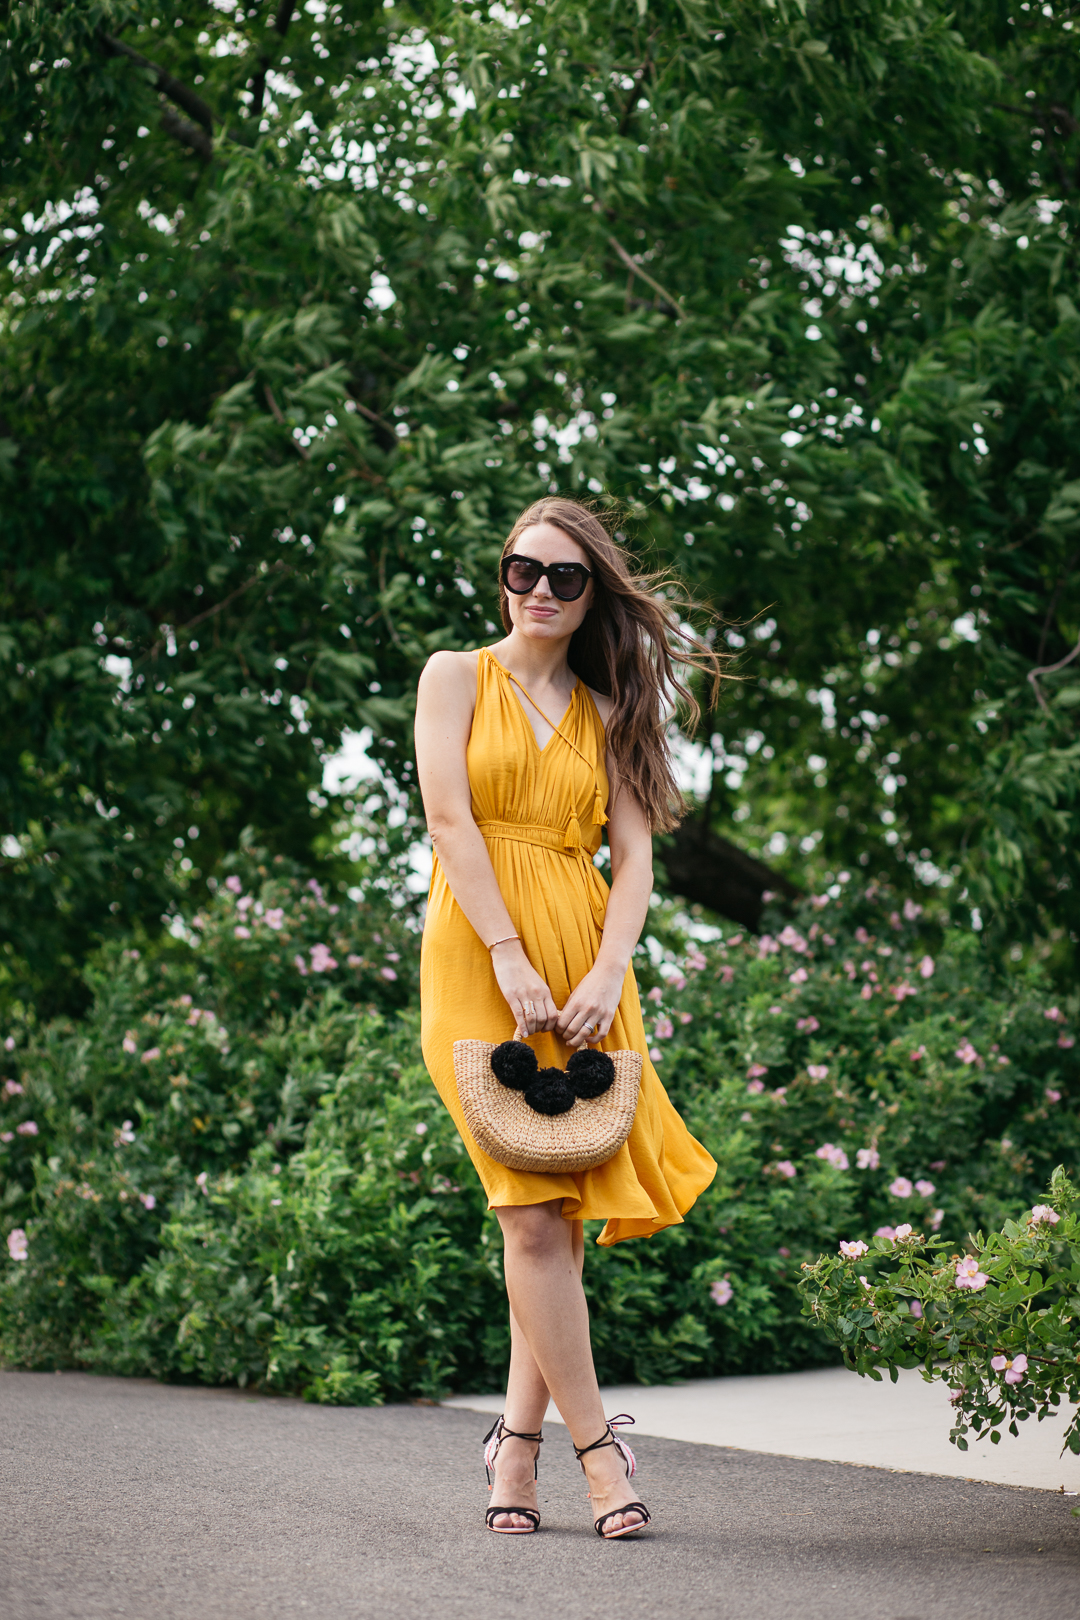 Styling a bright and bold look with LOFT